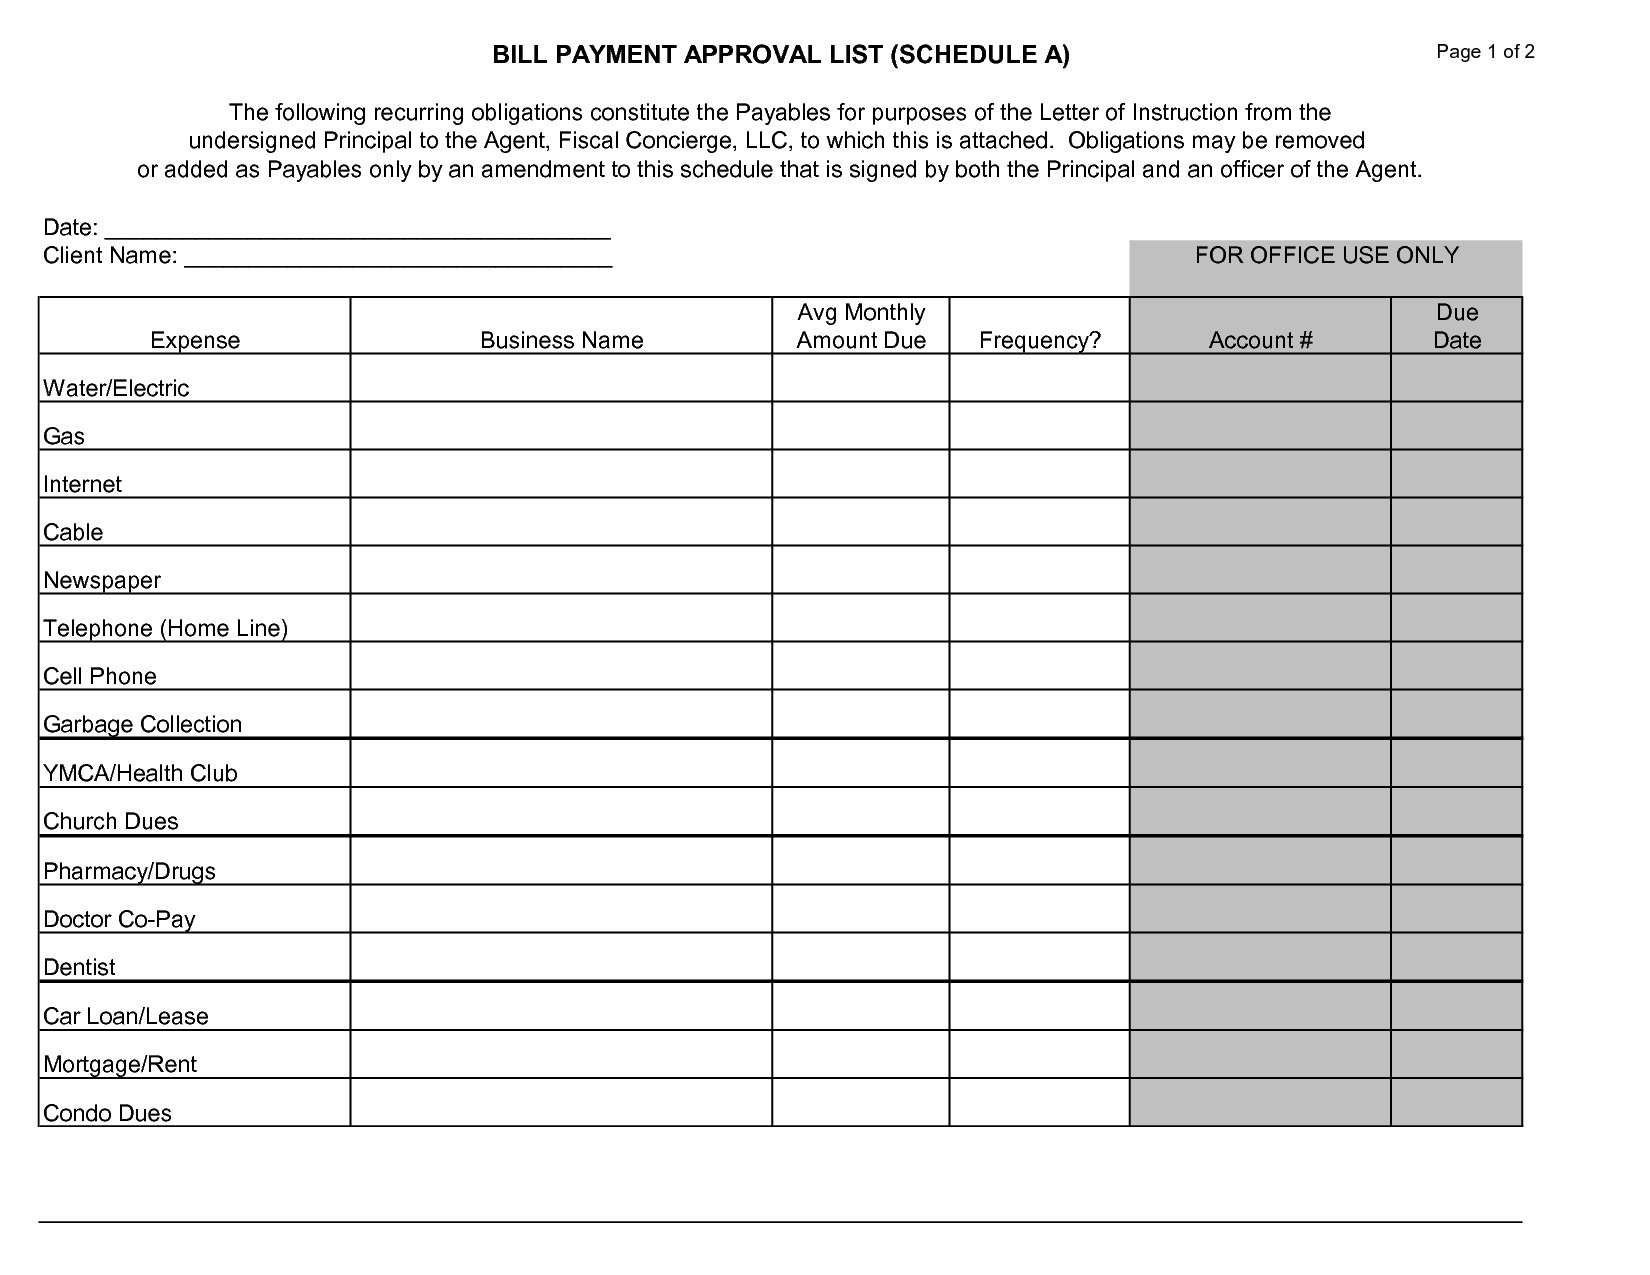 Custom Worksheet Monthly Bill Payment | Template Calendar Printable with regard to Custom Worksheet Monthly Bill Payment